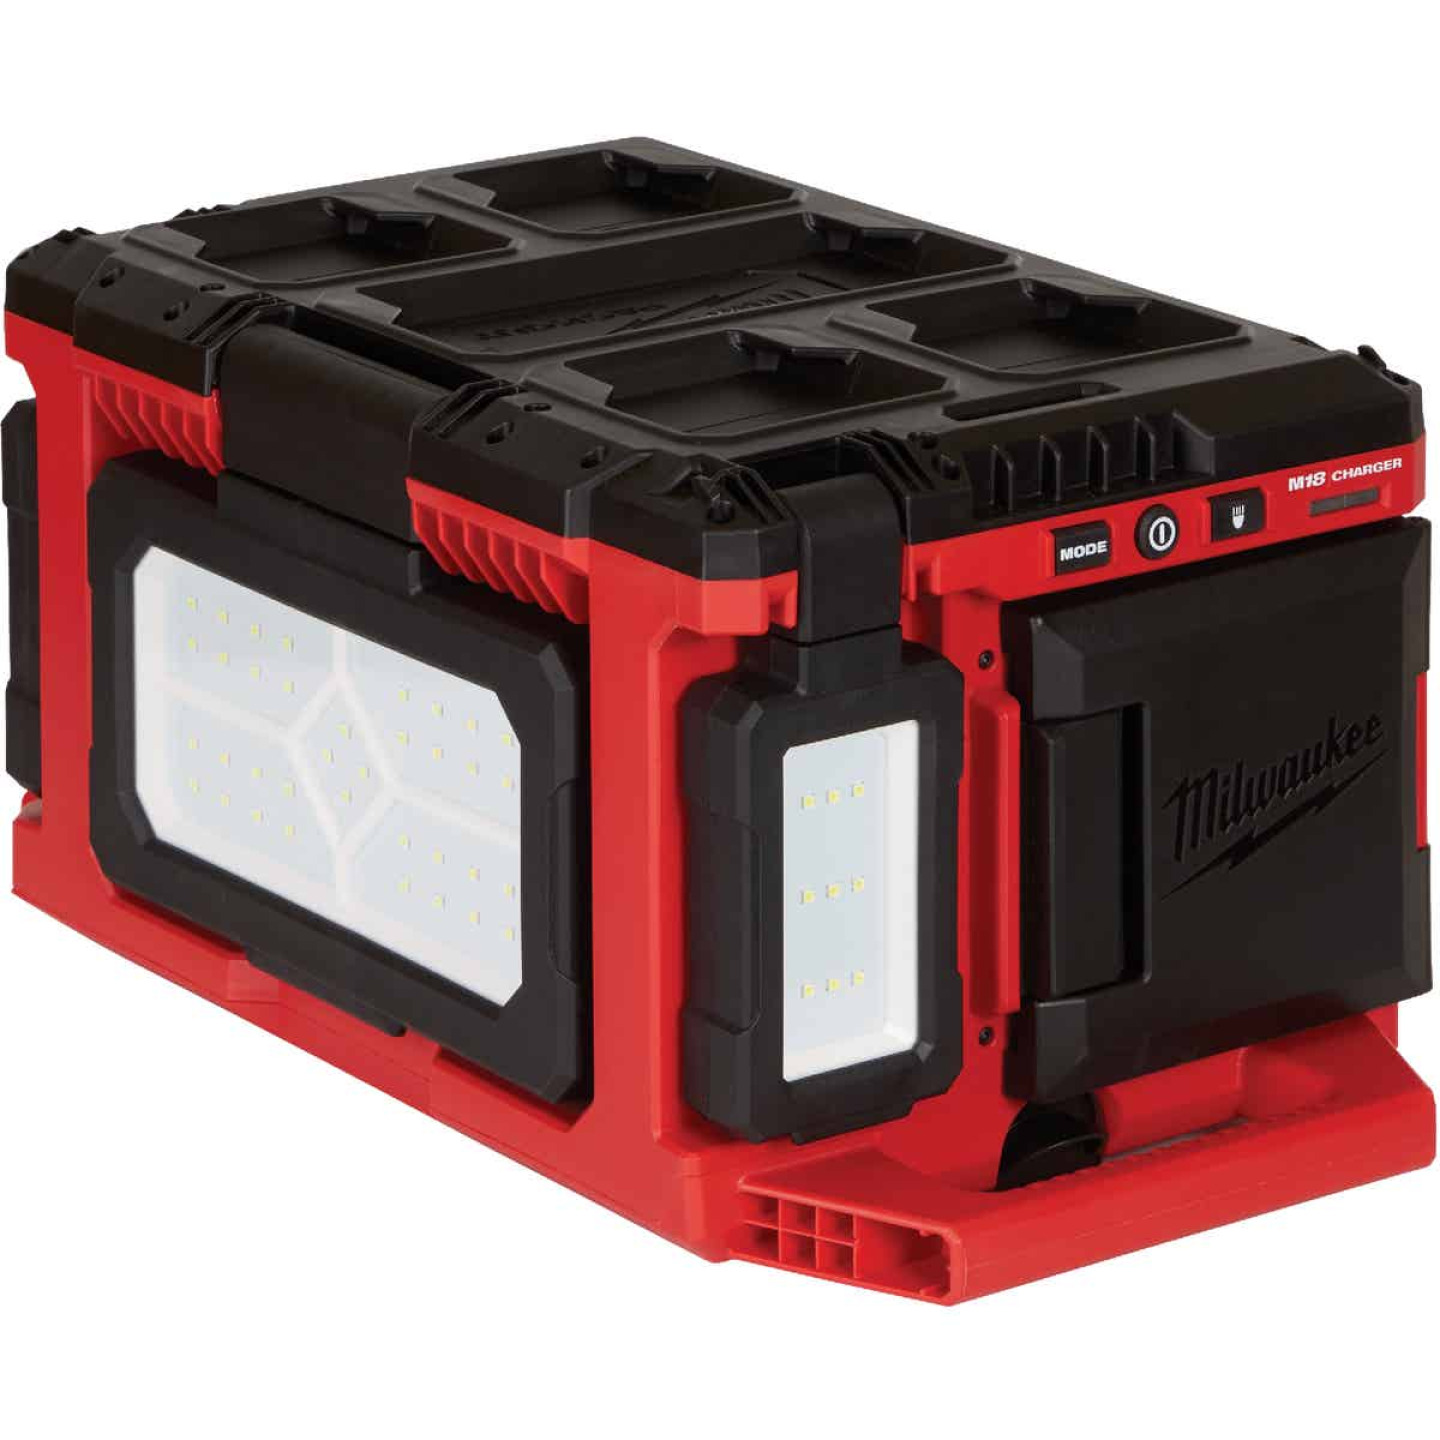 Milwaukee M18 18 Volt Lithium-Ion PACKOUT Corded/Cordless Work Light/Charger Image 1